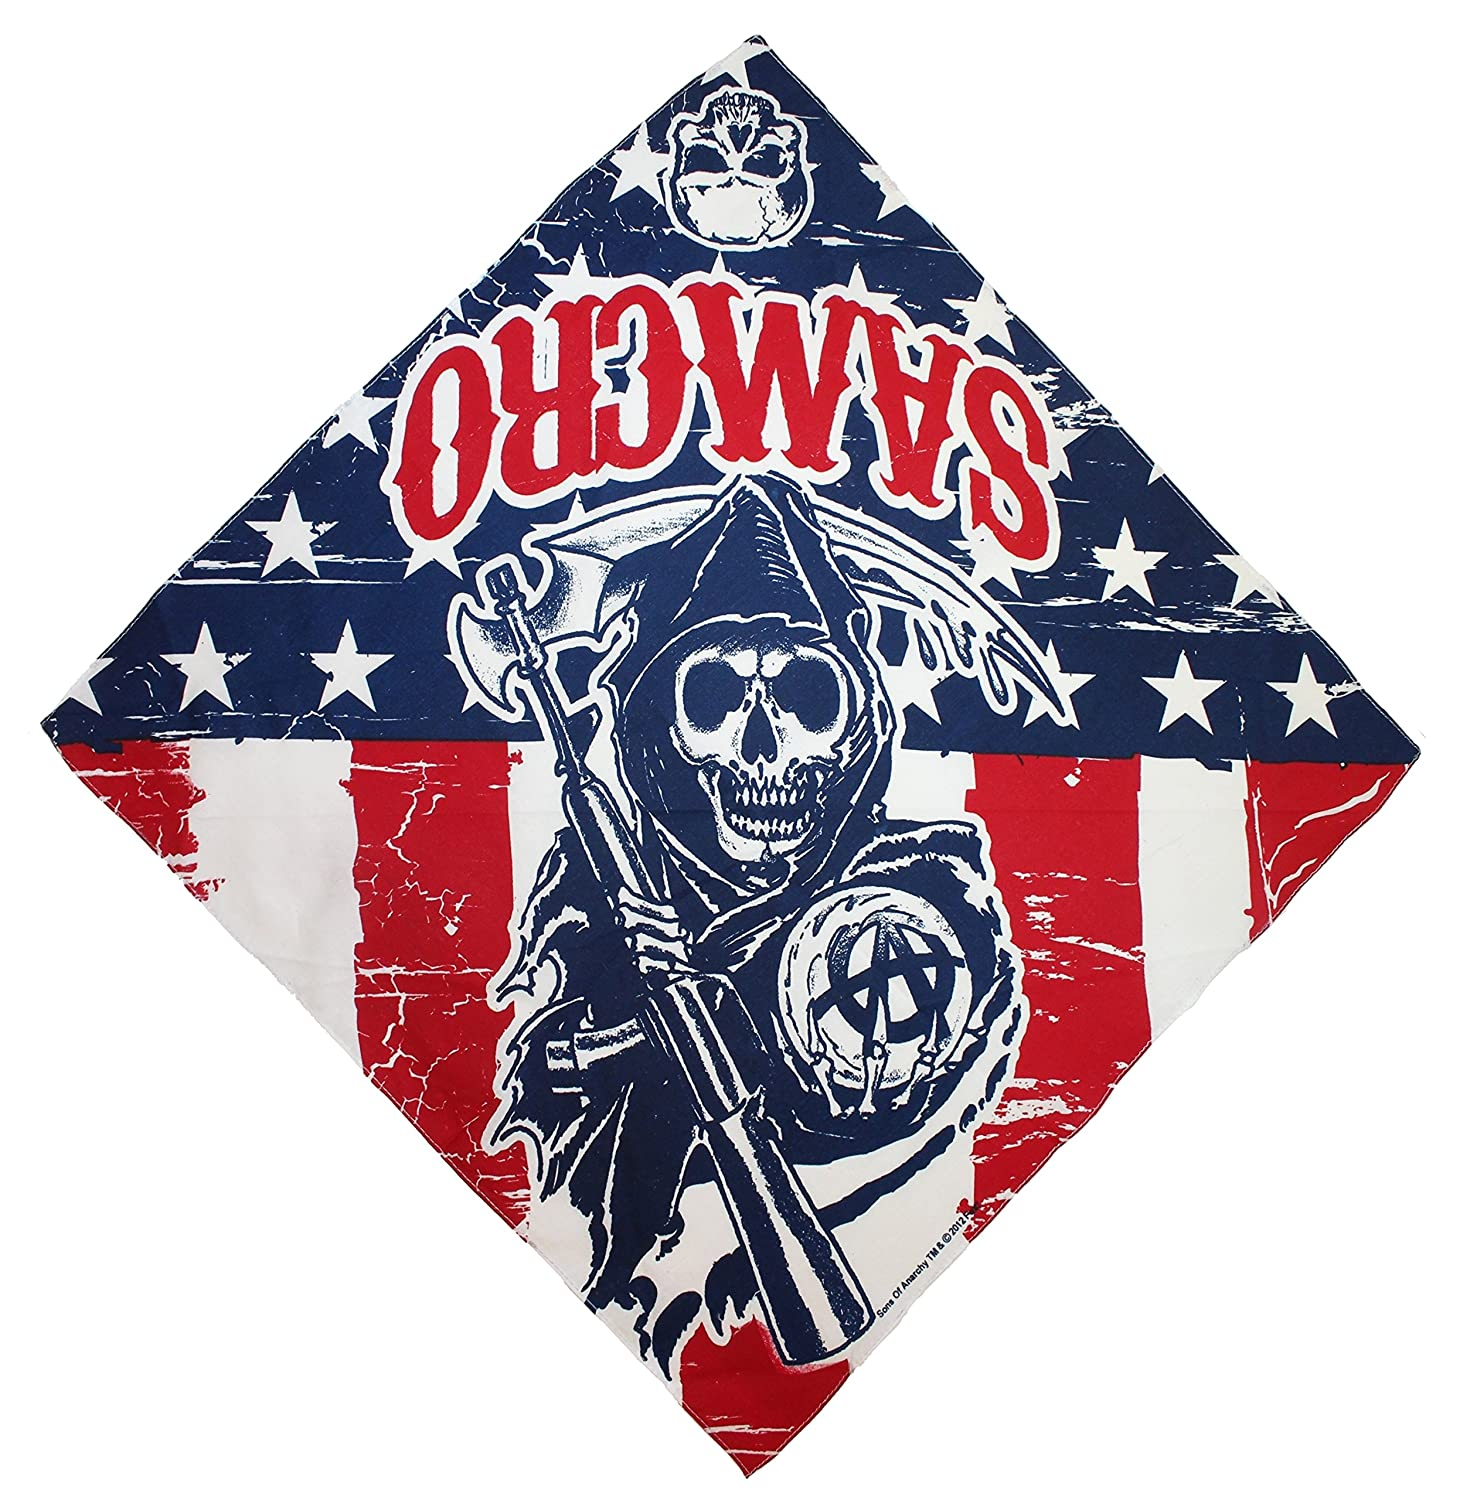 amazon com sons of anarchy bandana standard red blue clothing rh amazon com New Sons of Anarchy Logo Sons of Anarchy Patches